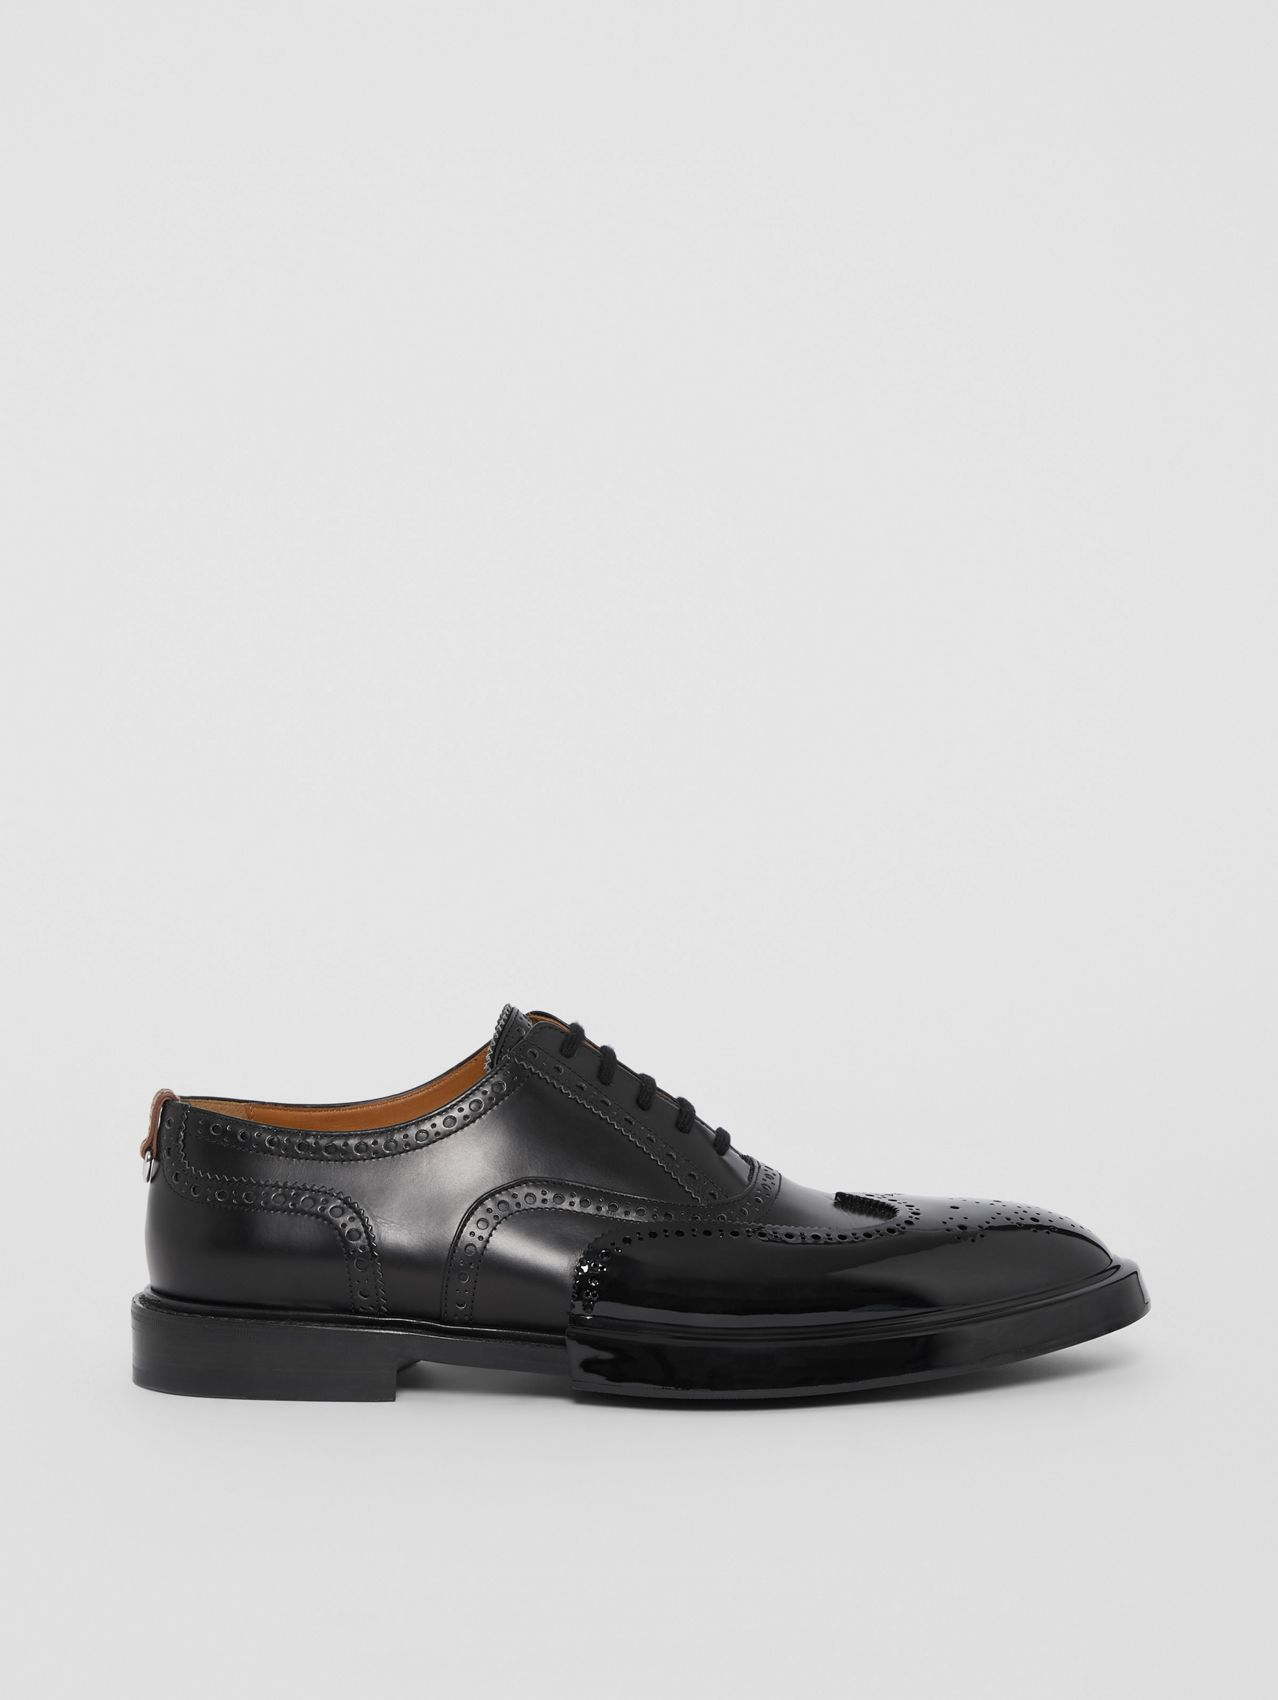 Toe Cap Detail Leather Oxford Brogues (Black)